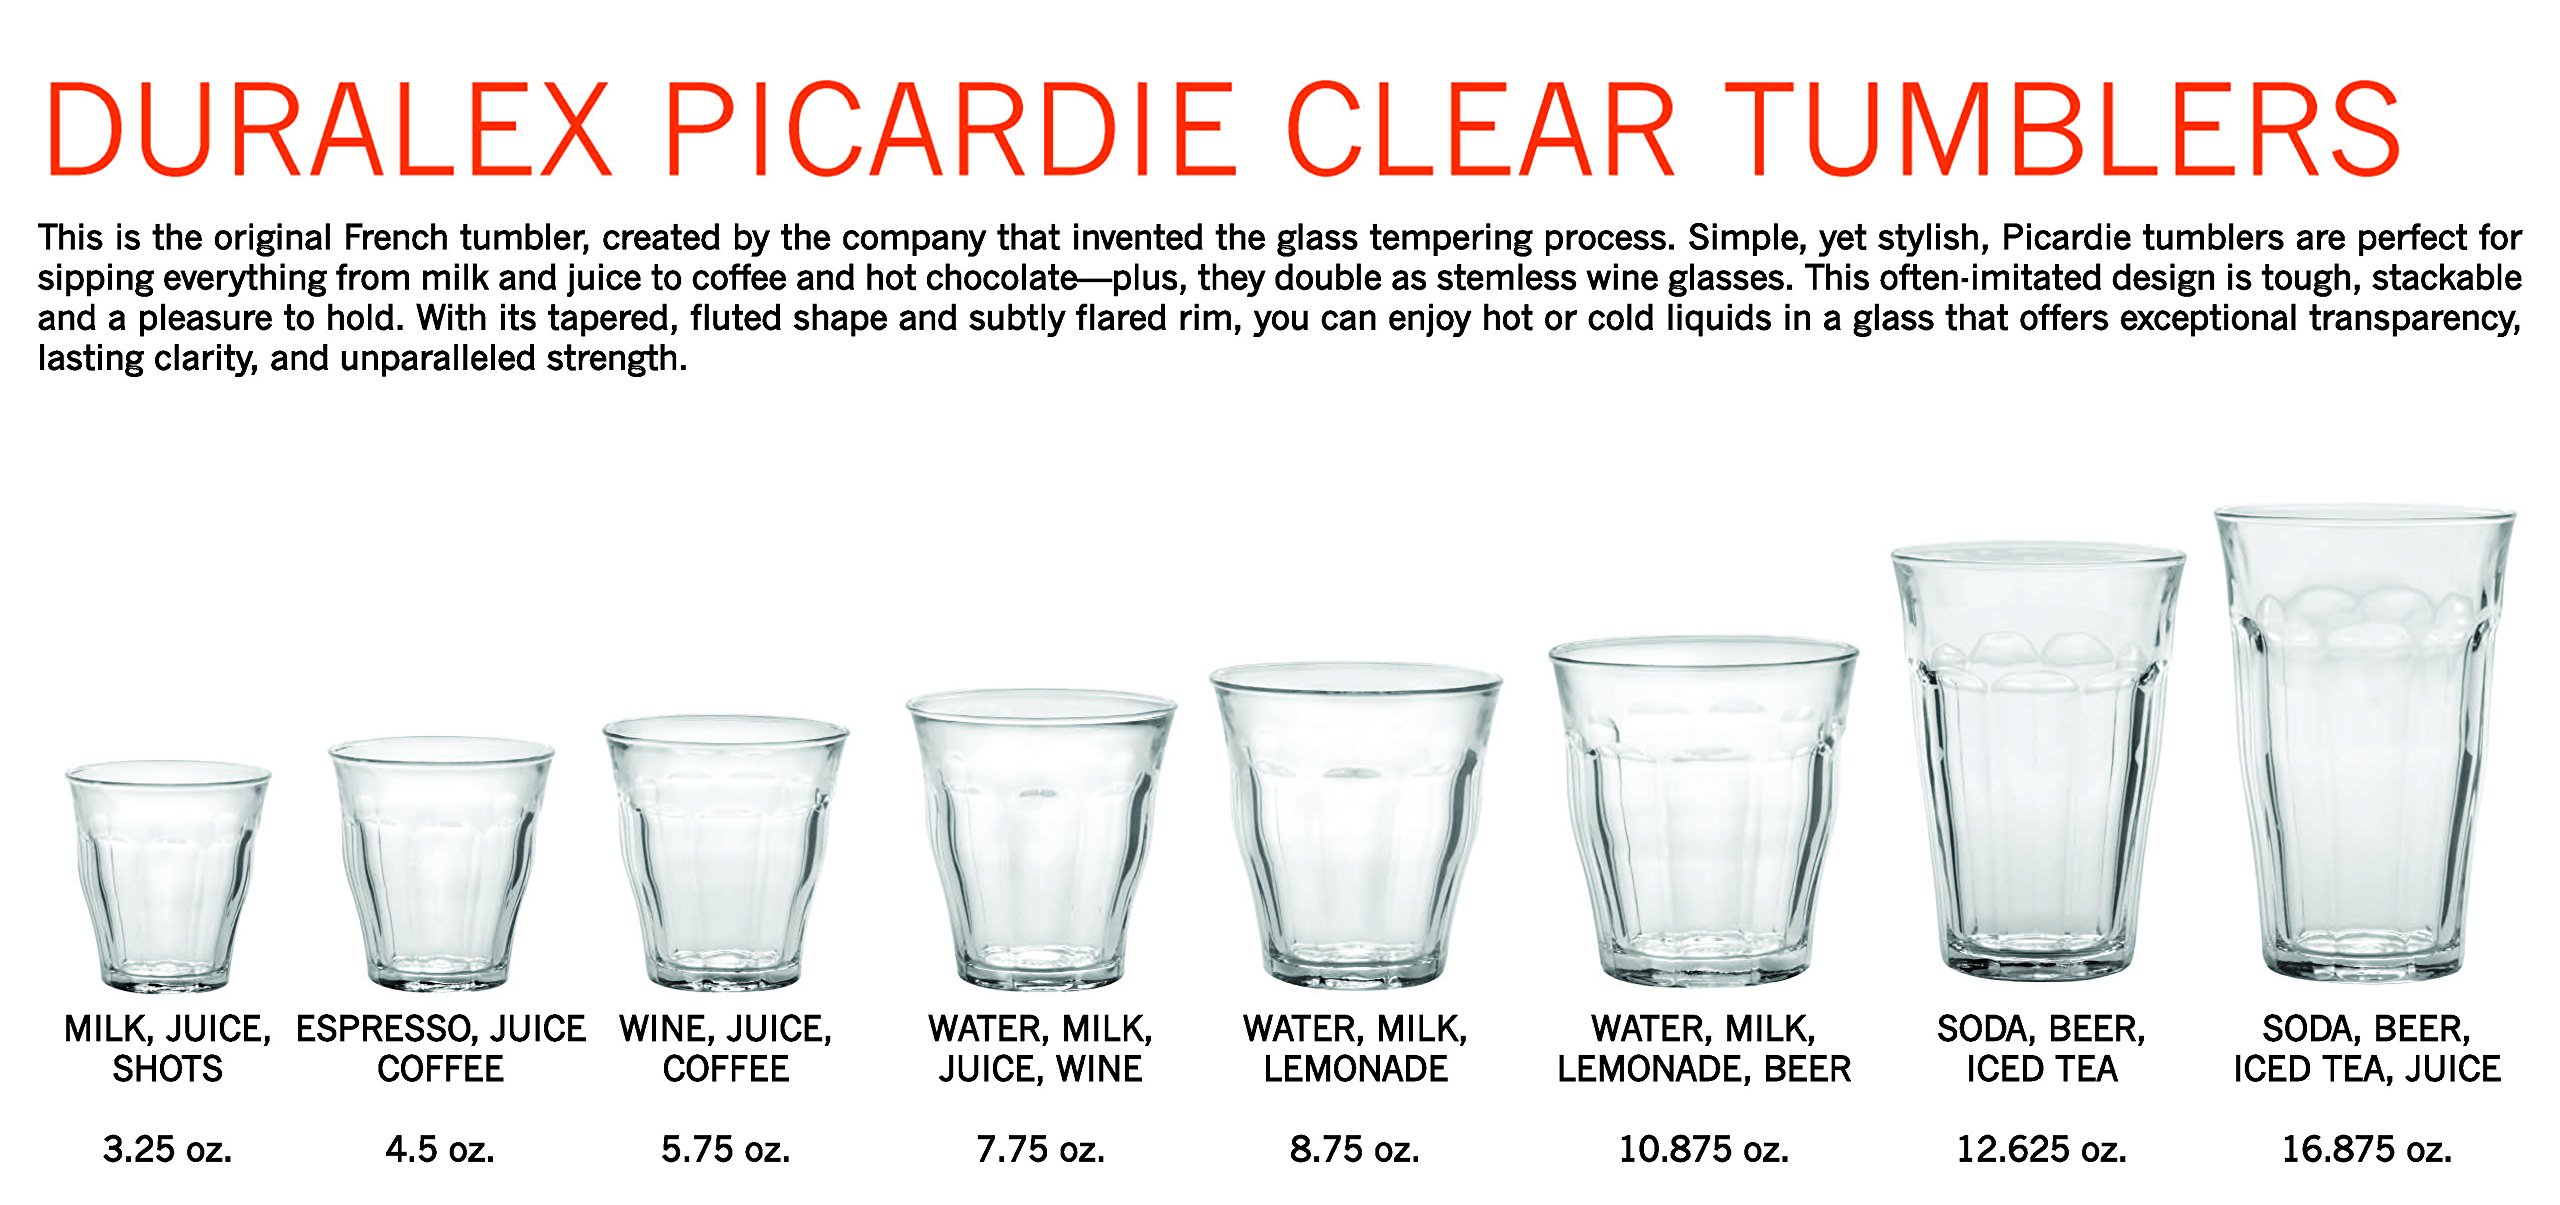 Duralex Made In France Picardie Clear Tumbler, Set of 6, 12.62 oz.